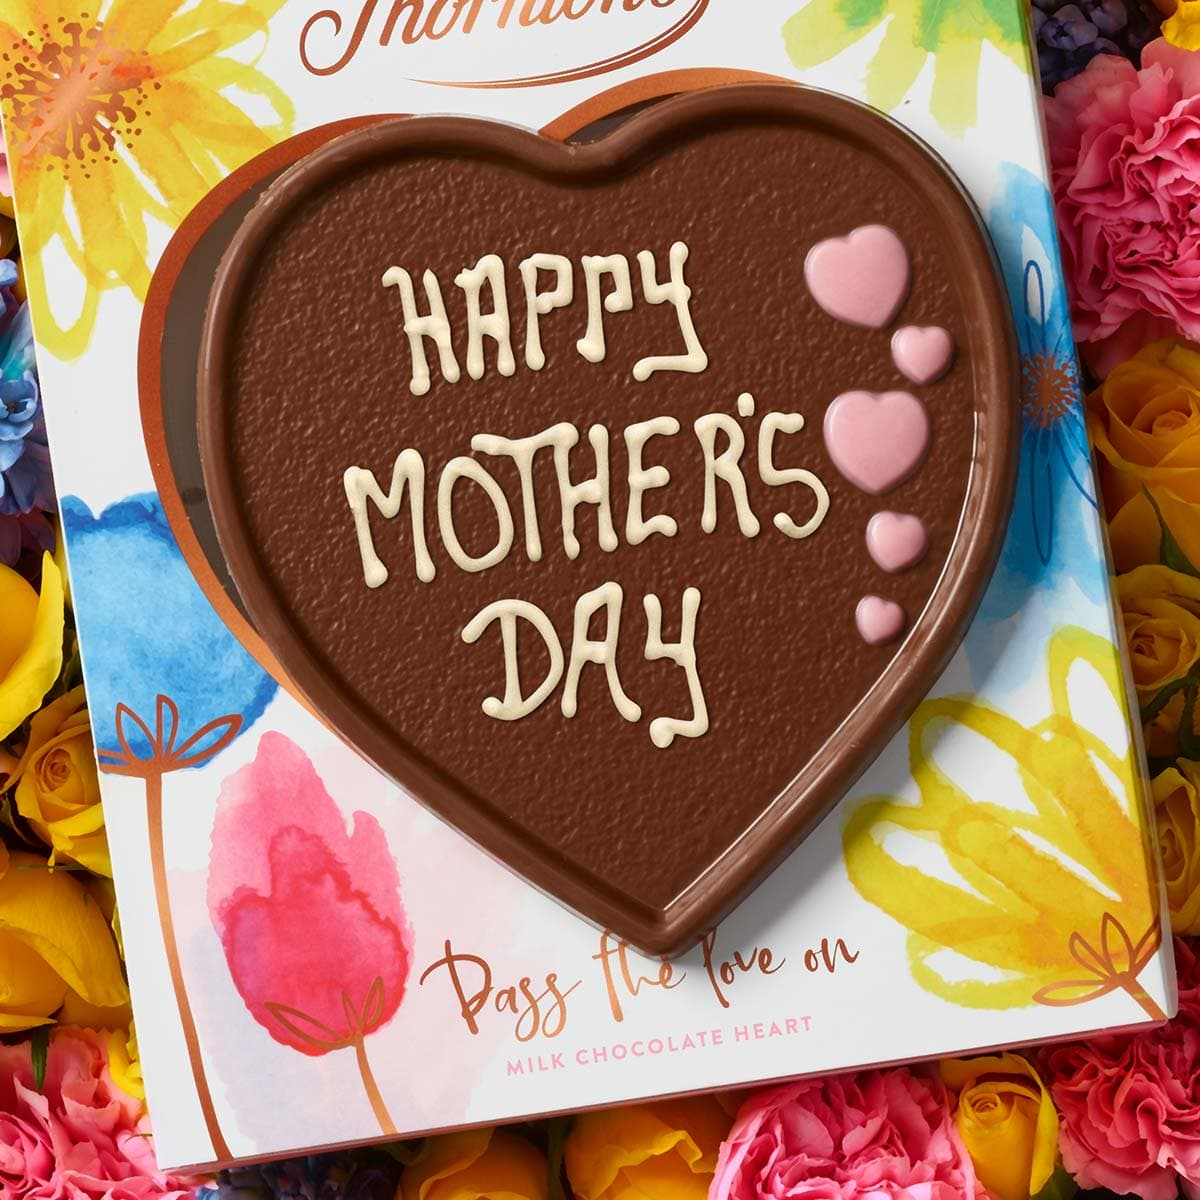 """Heart shaped chocolate with """"Happy Mother's Day"""" iced message"""